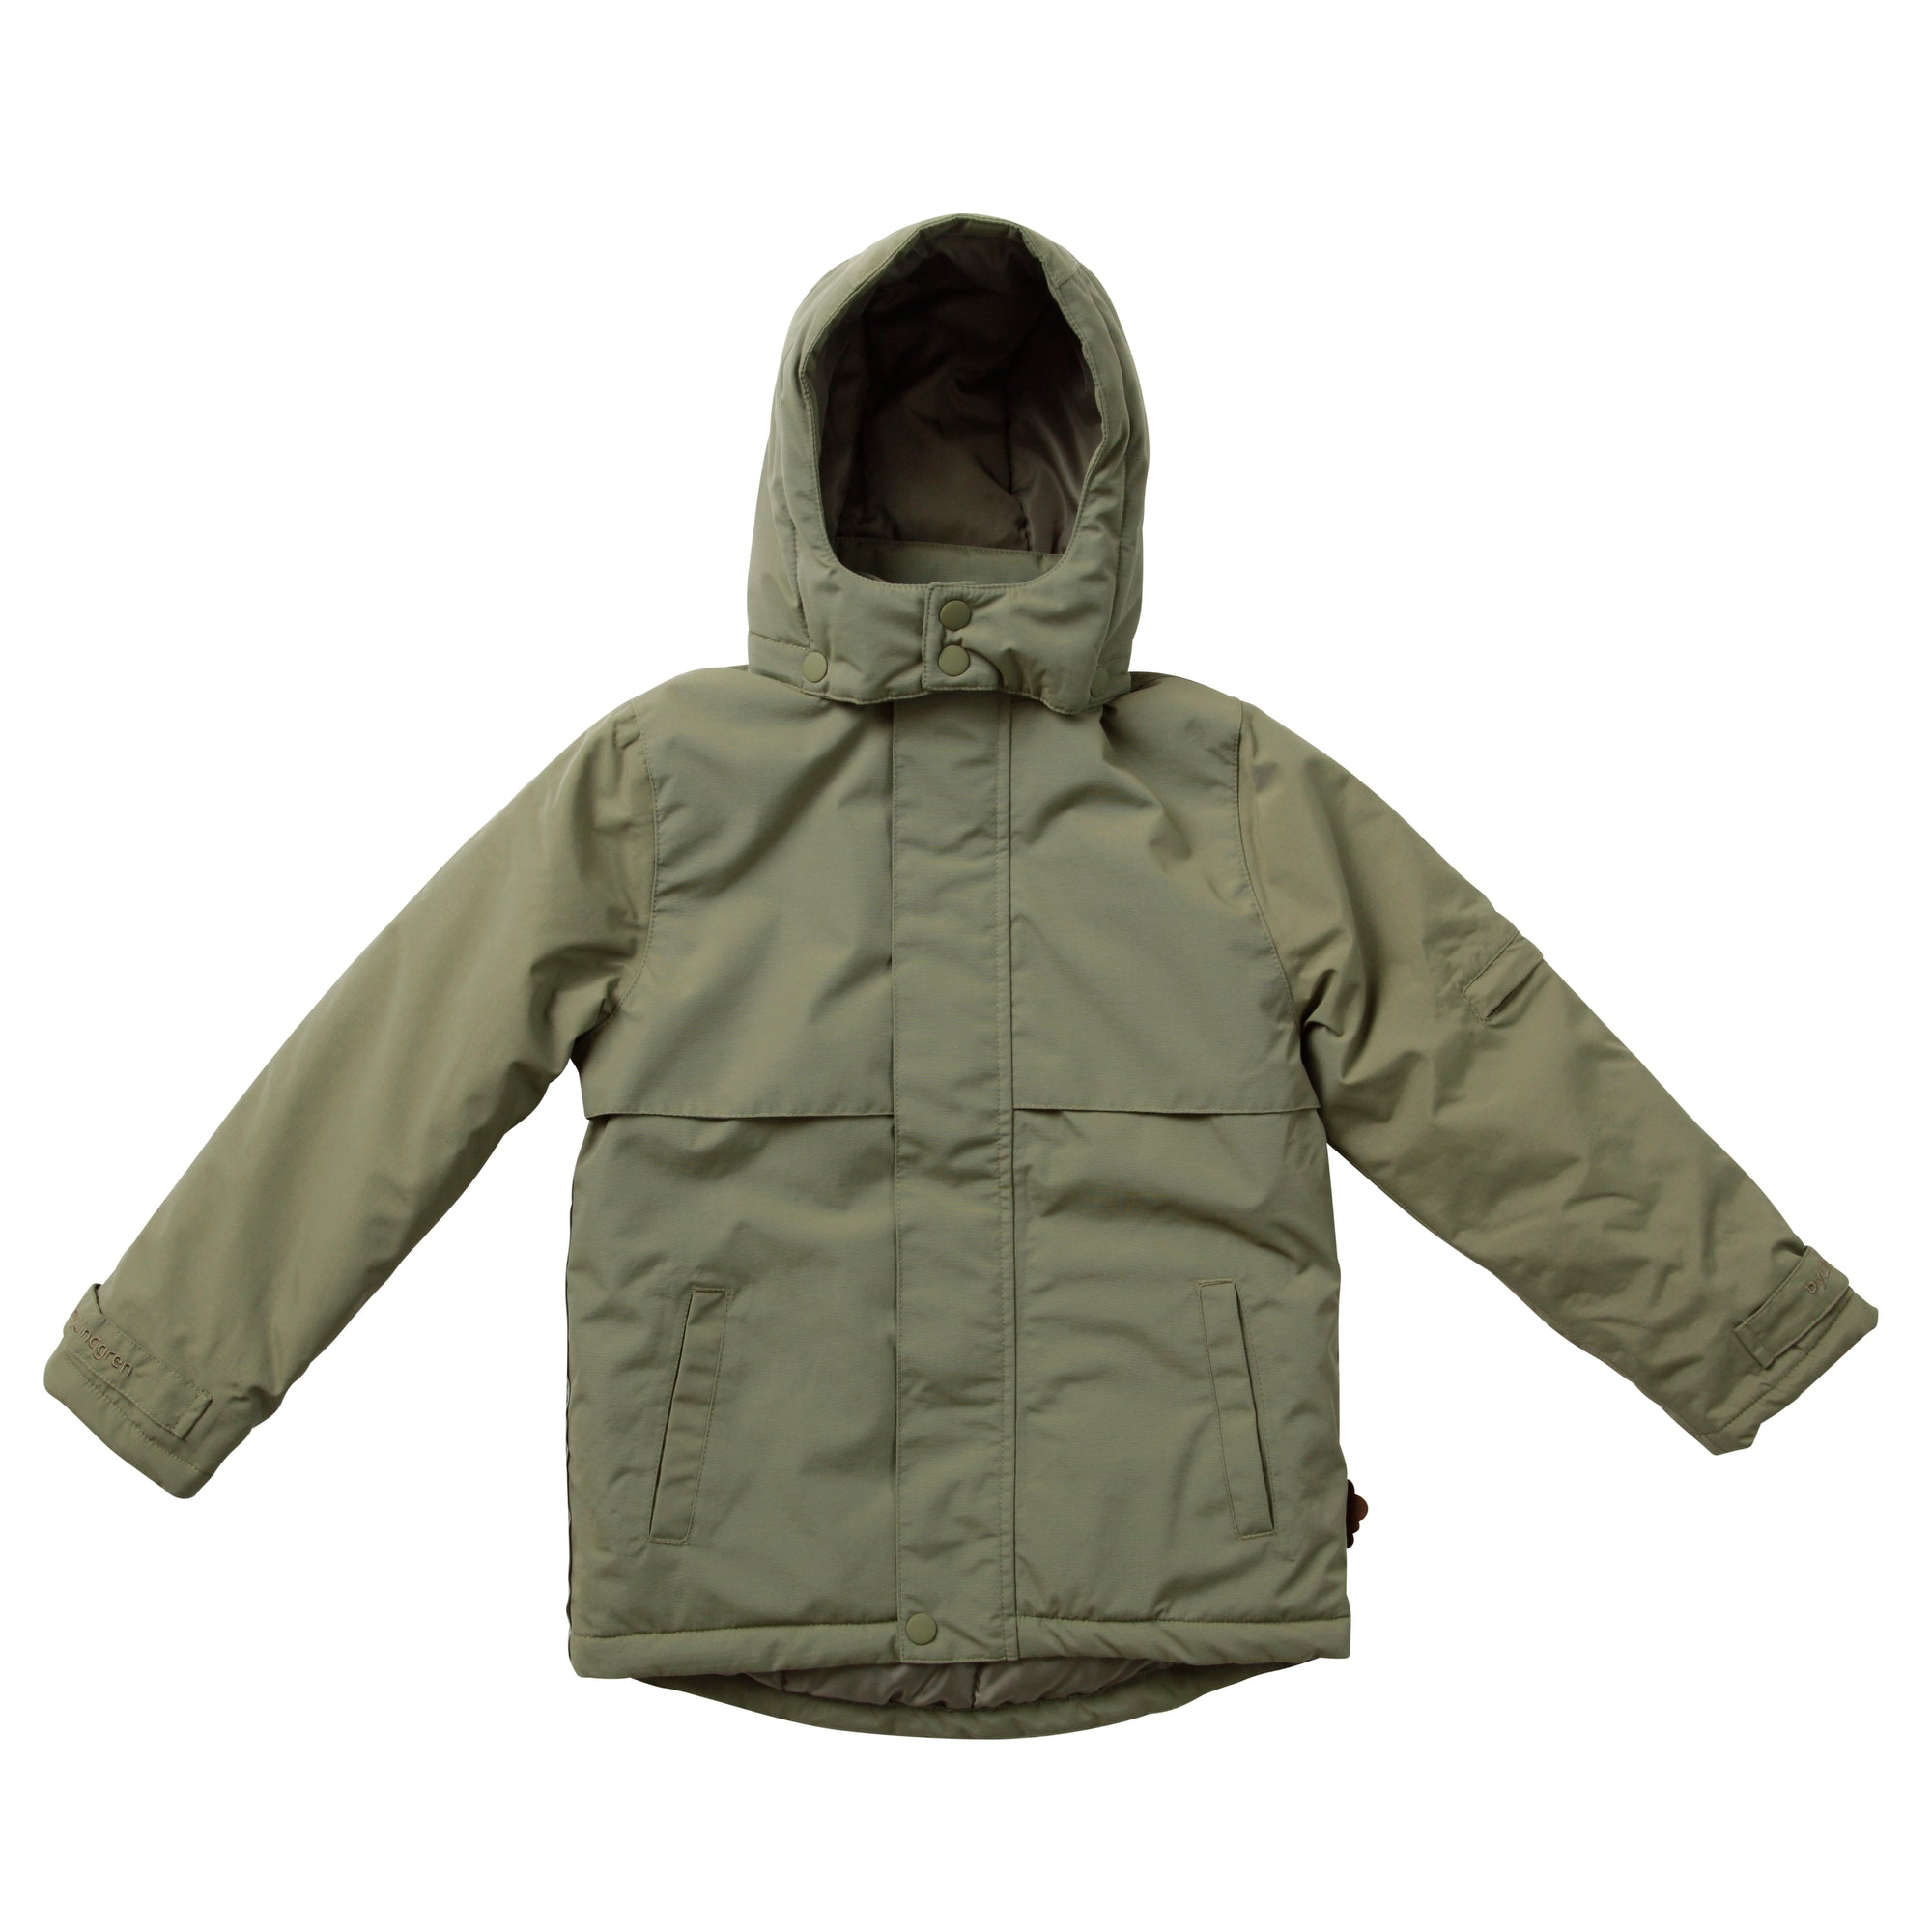 byLindgren - Odin Winter Jacket - Dusty Olive